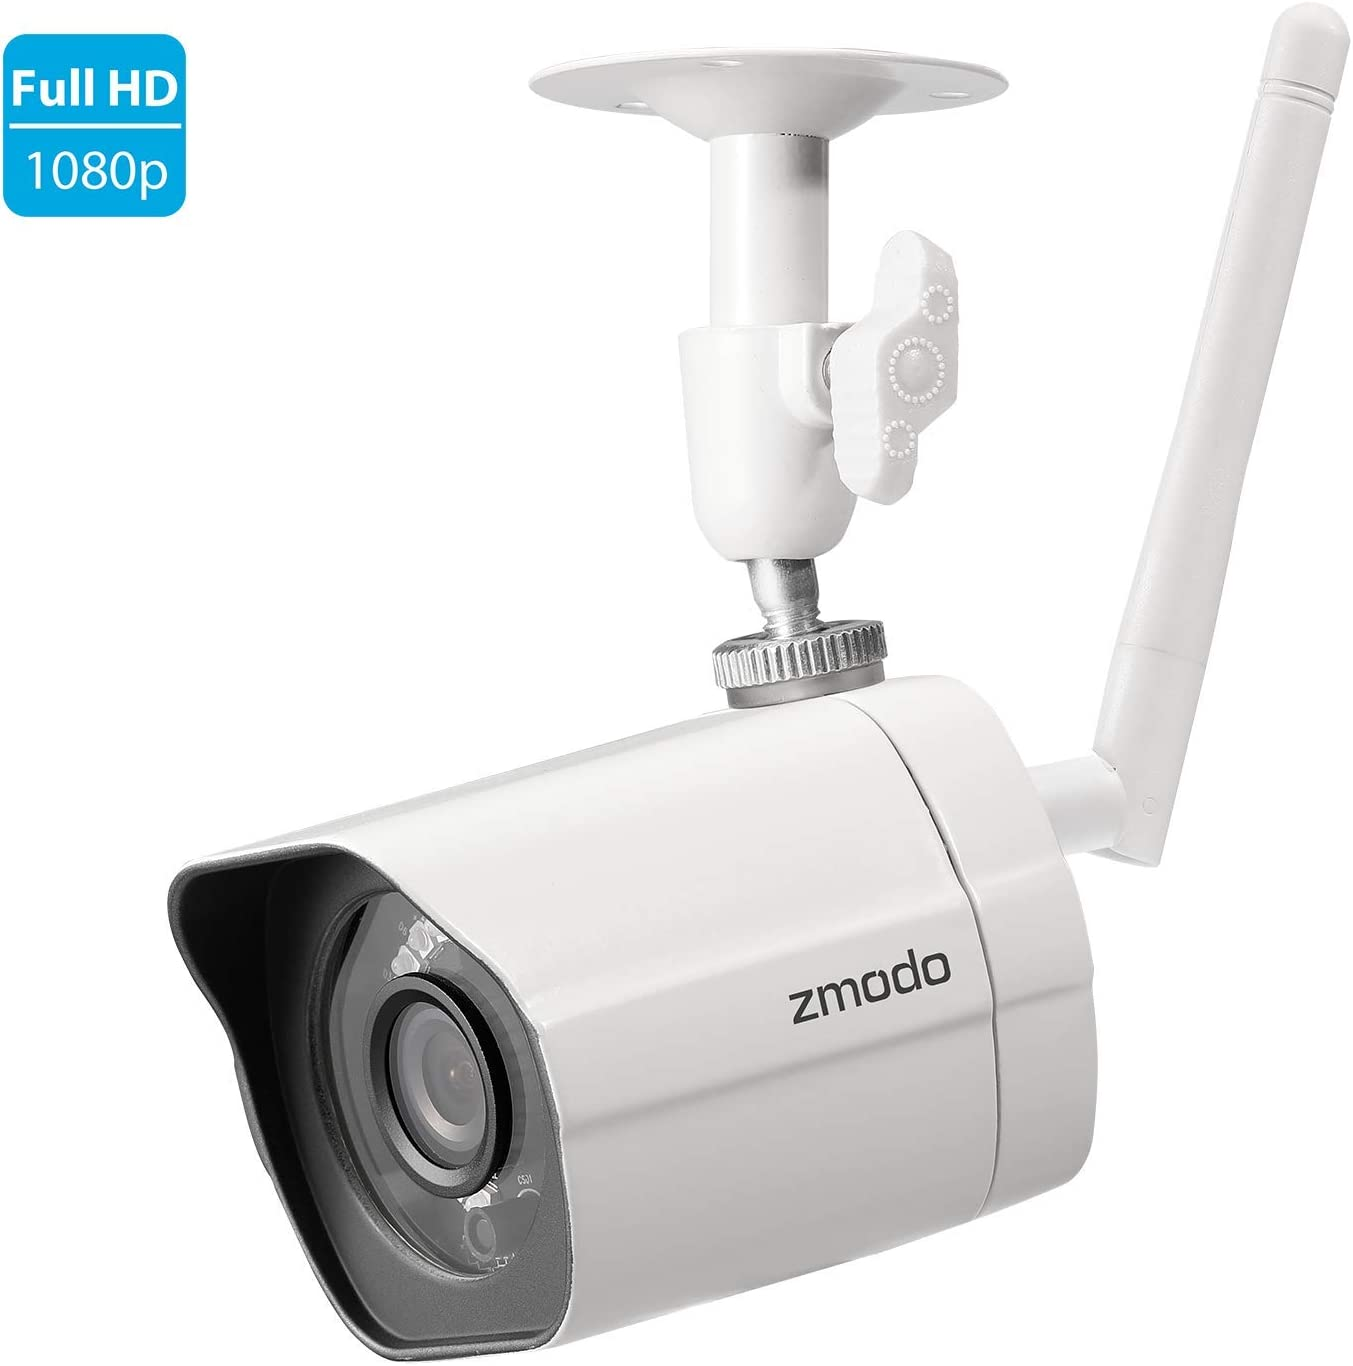 The Zmodo 1080p Full HD Outdoor Wireless Security Camera System travel product recommended by Jenny Ji on Lifney.